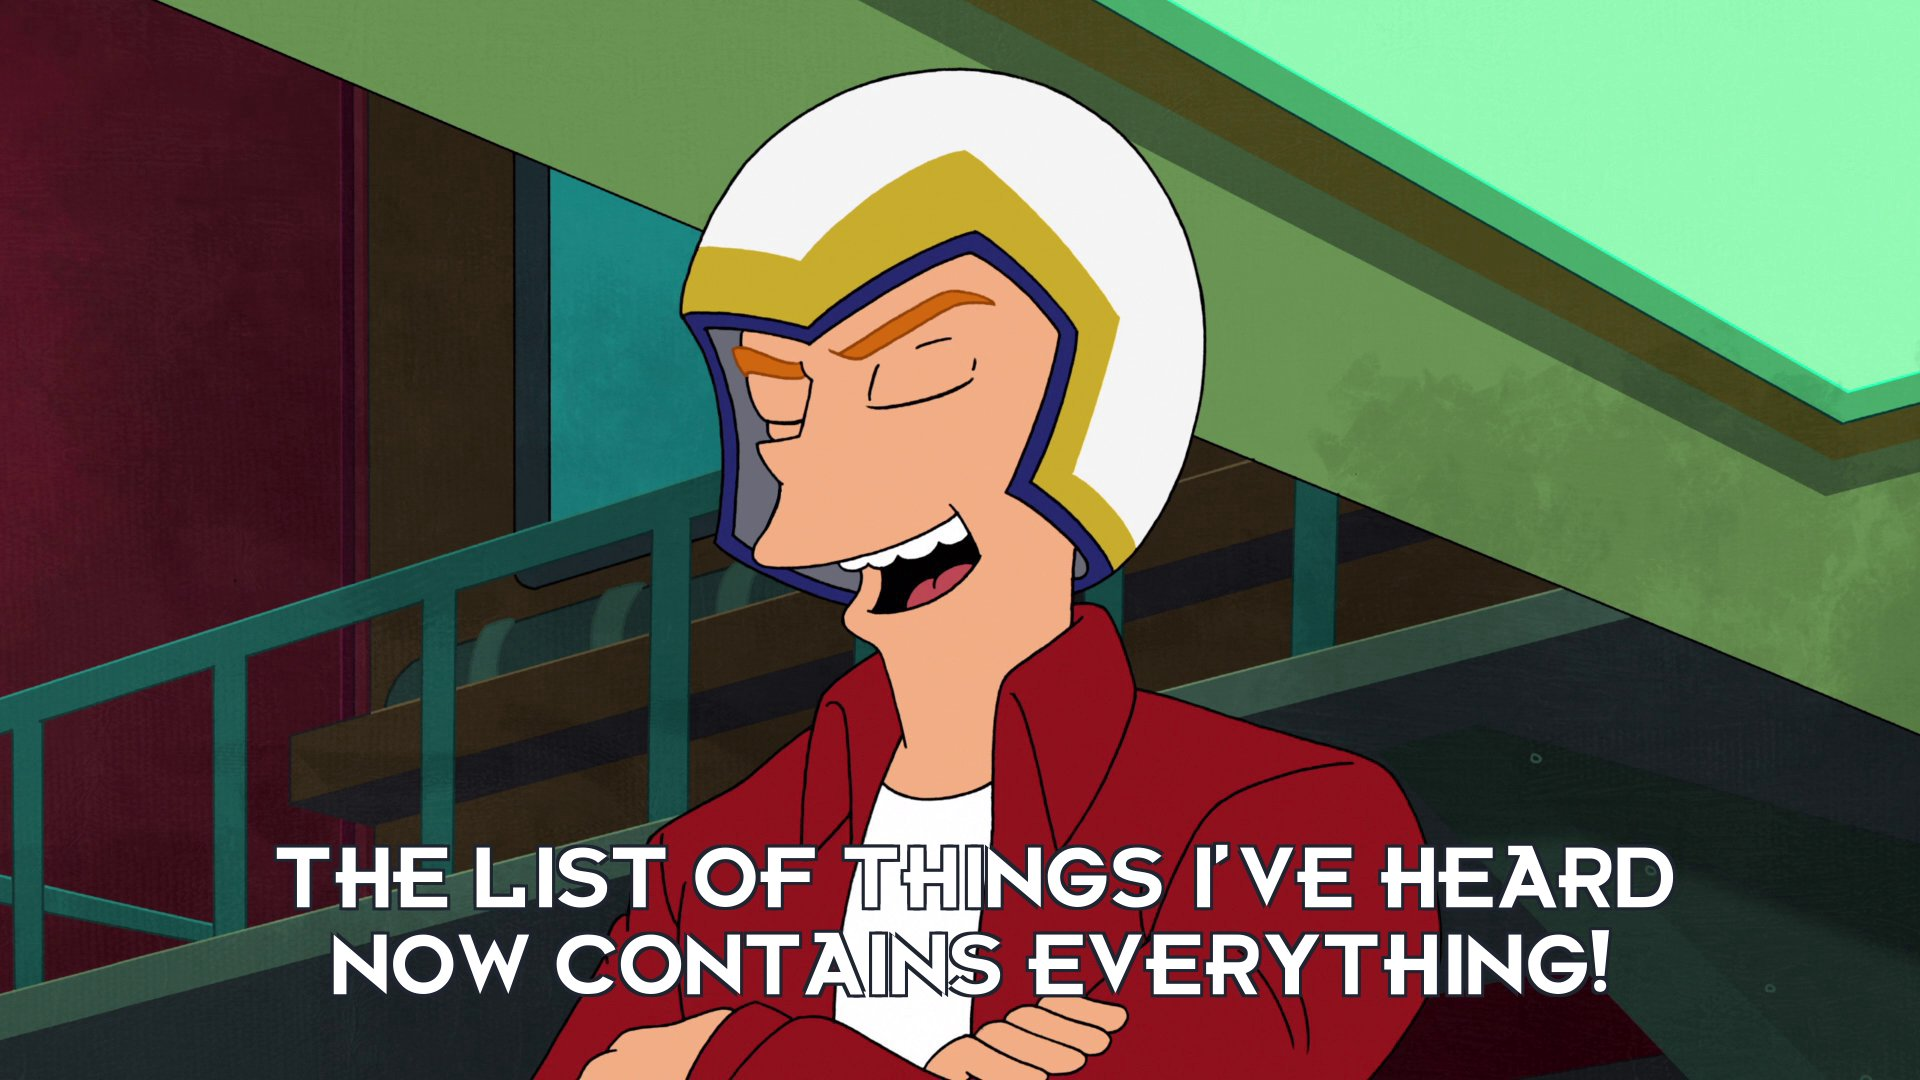 Philip J Fry: The list of things I've heard now contains everything!